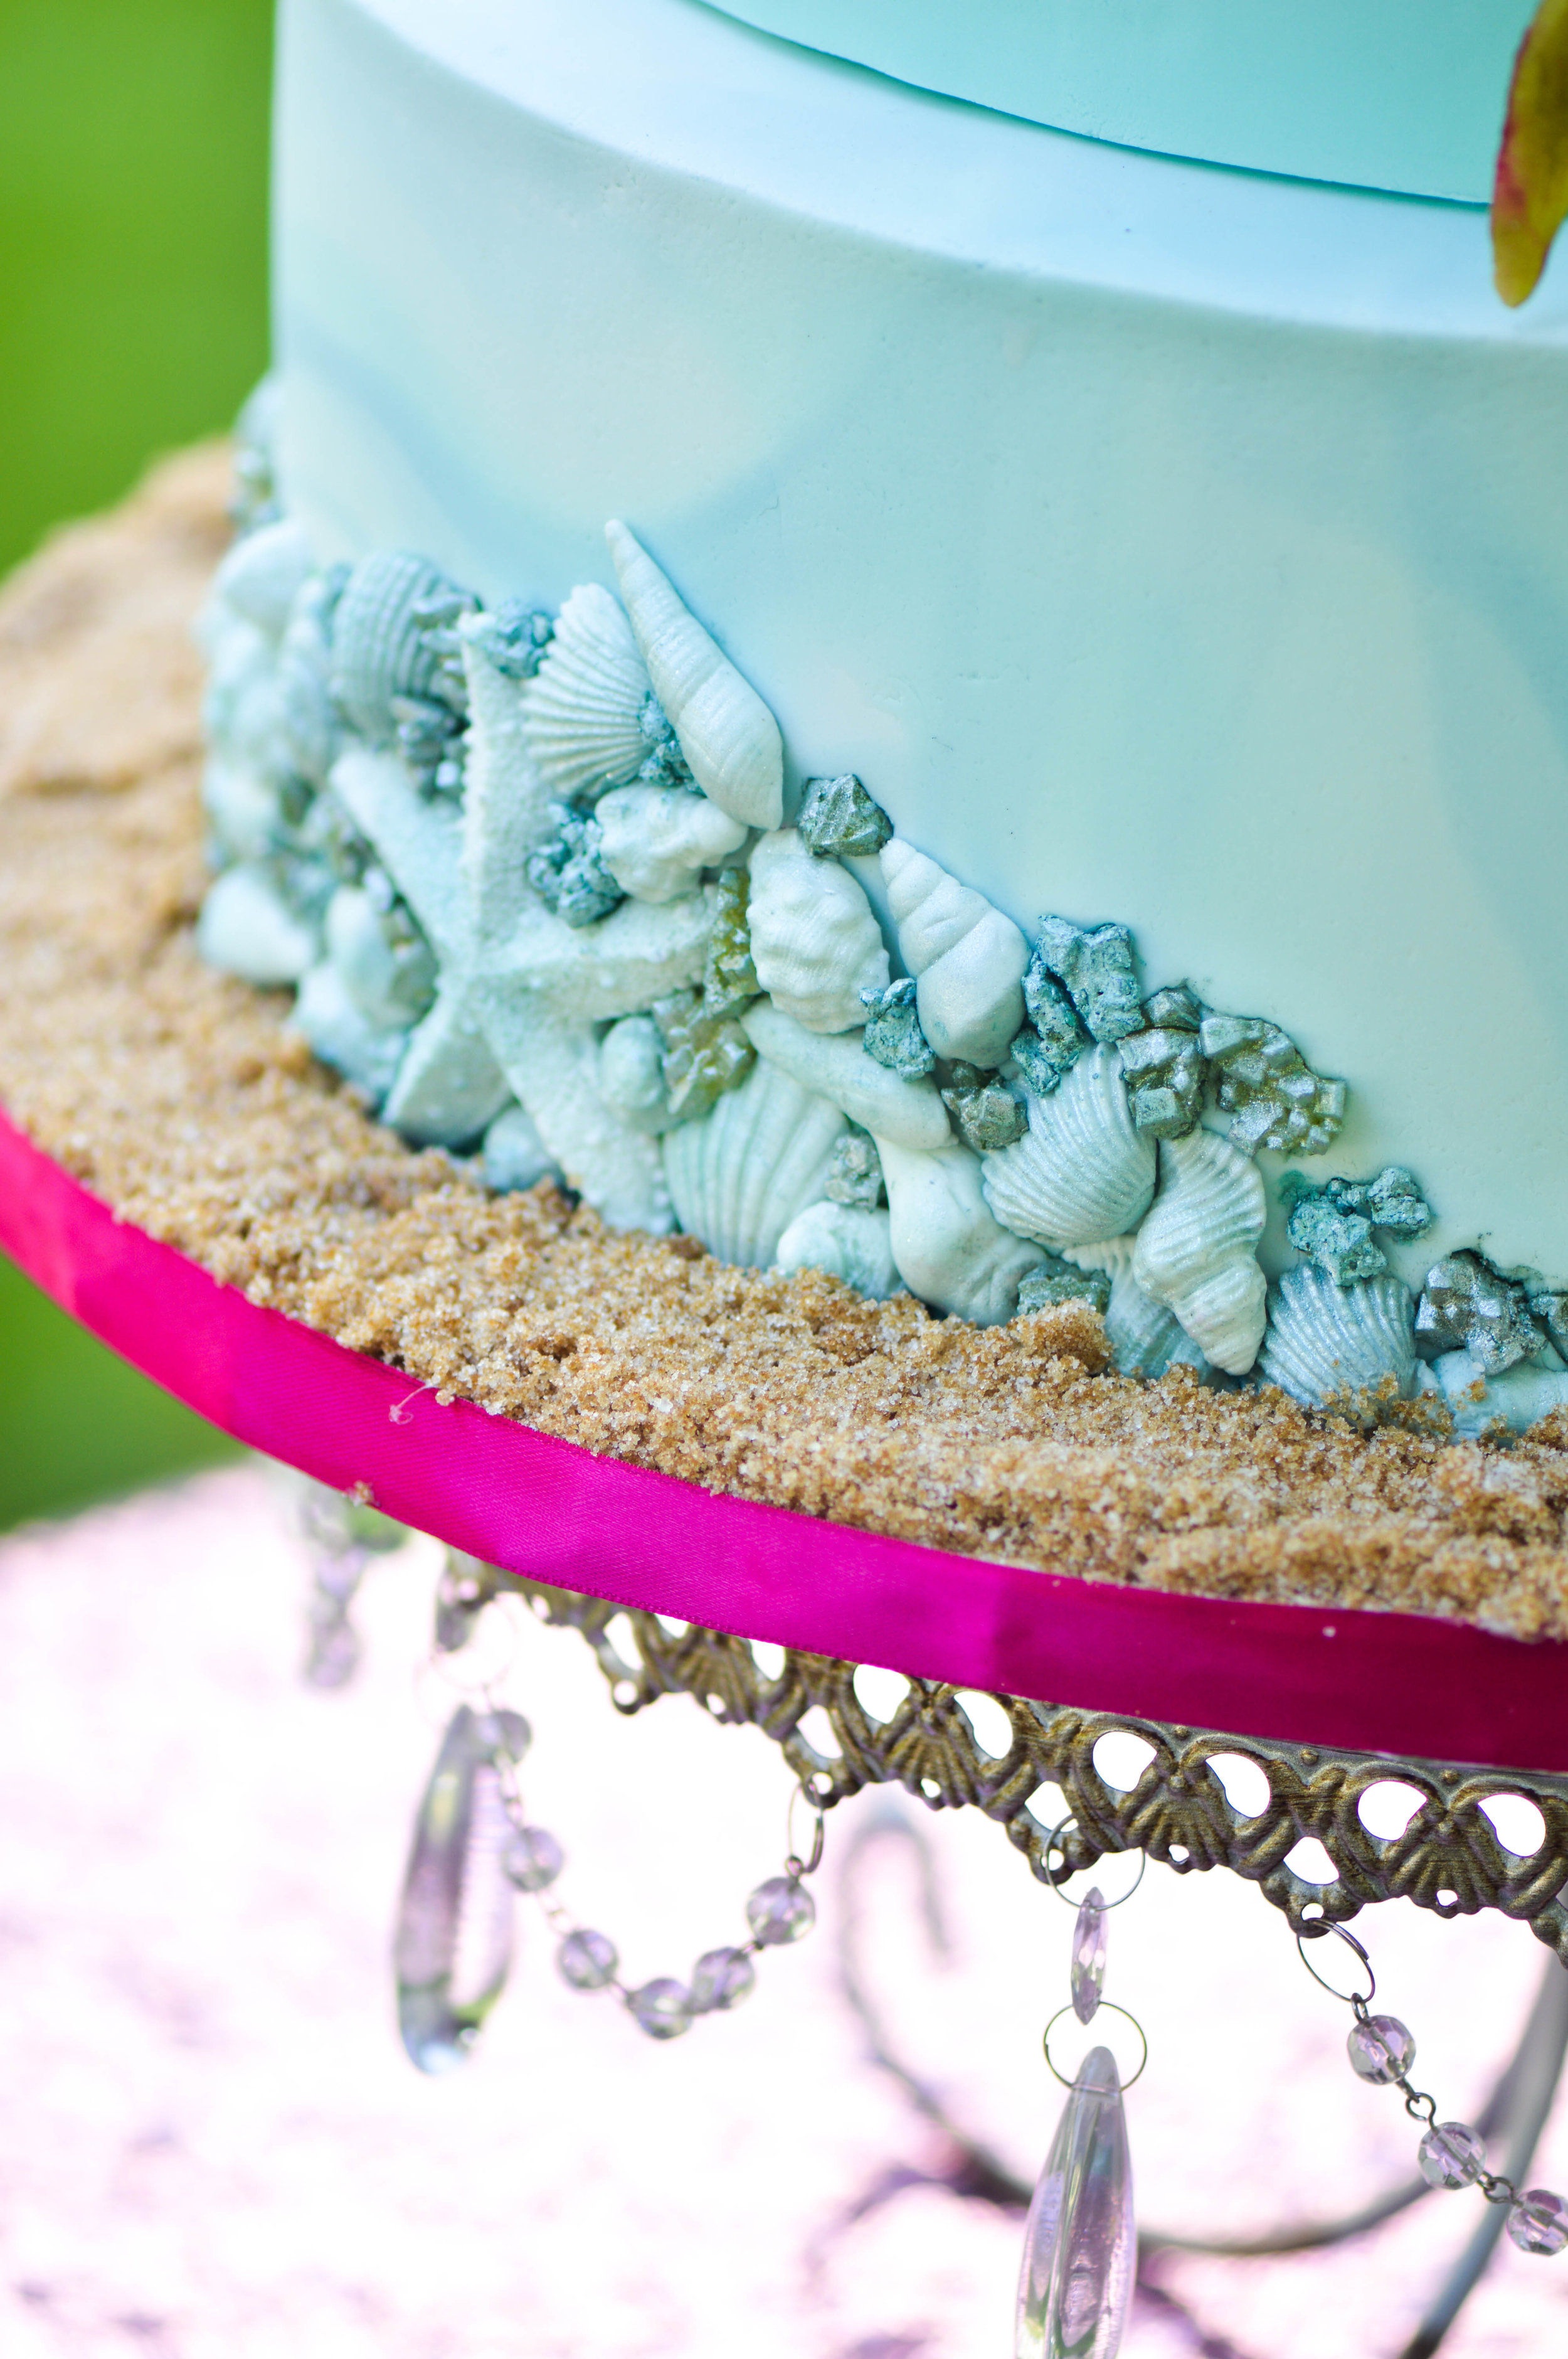 Sensational Shells - The bottom tier included a delicate bas-relief effect with edible sea shells and candy crystals.